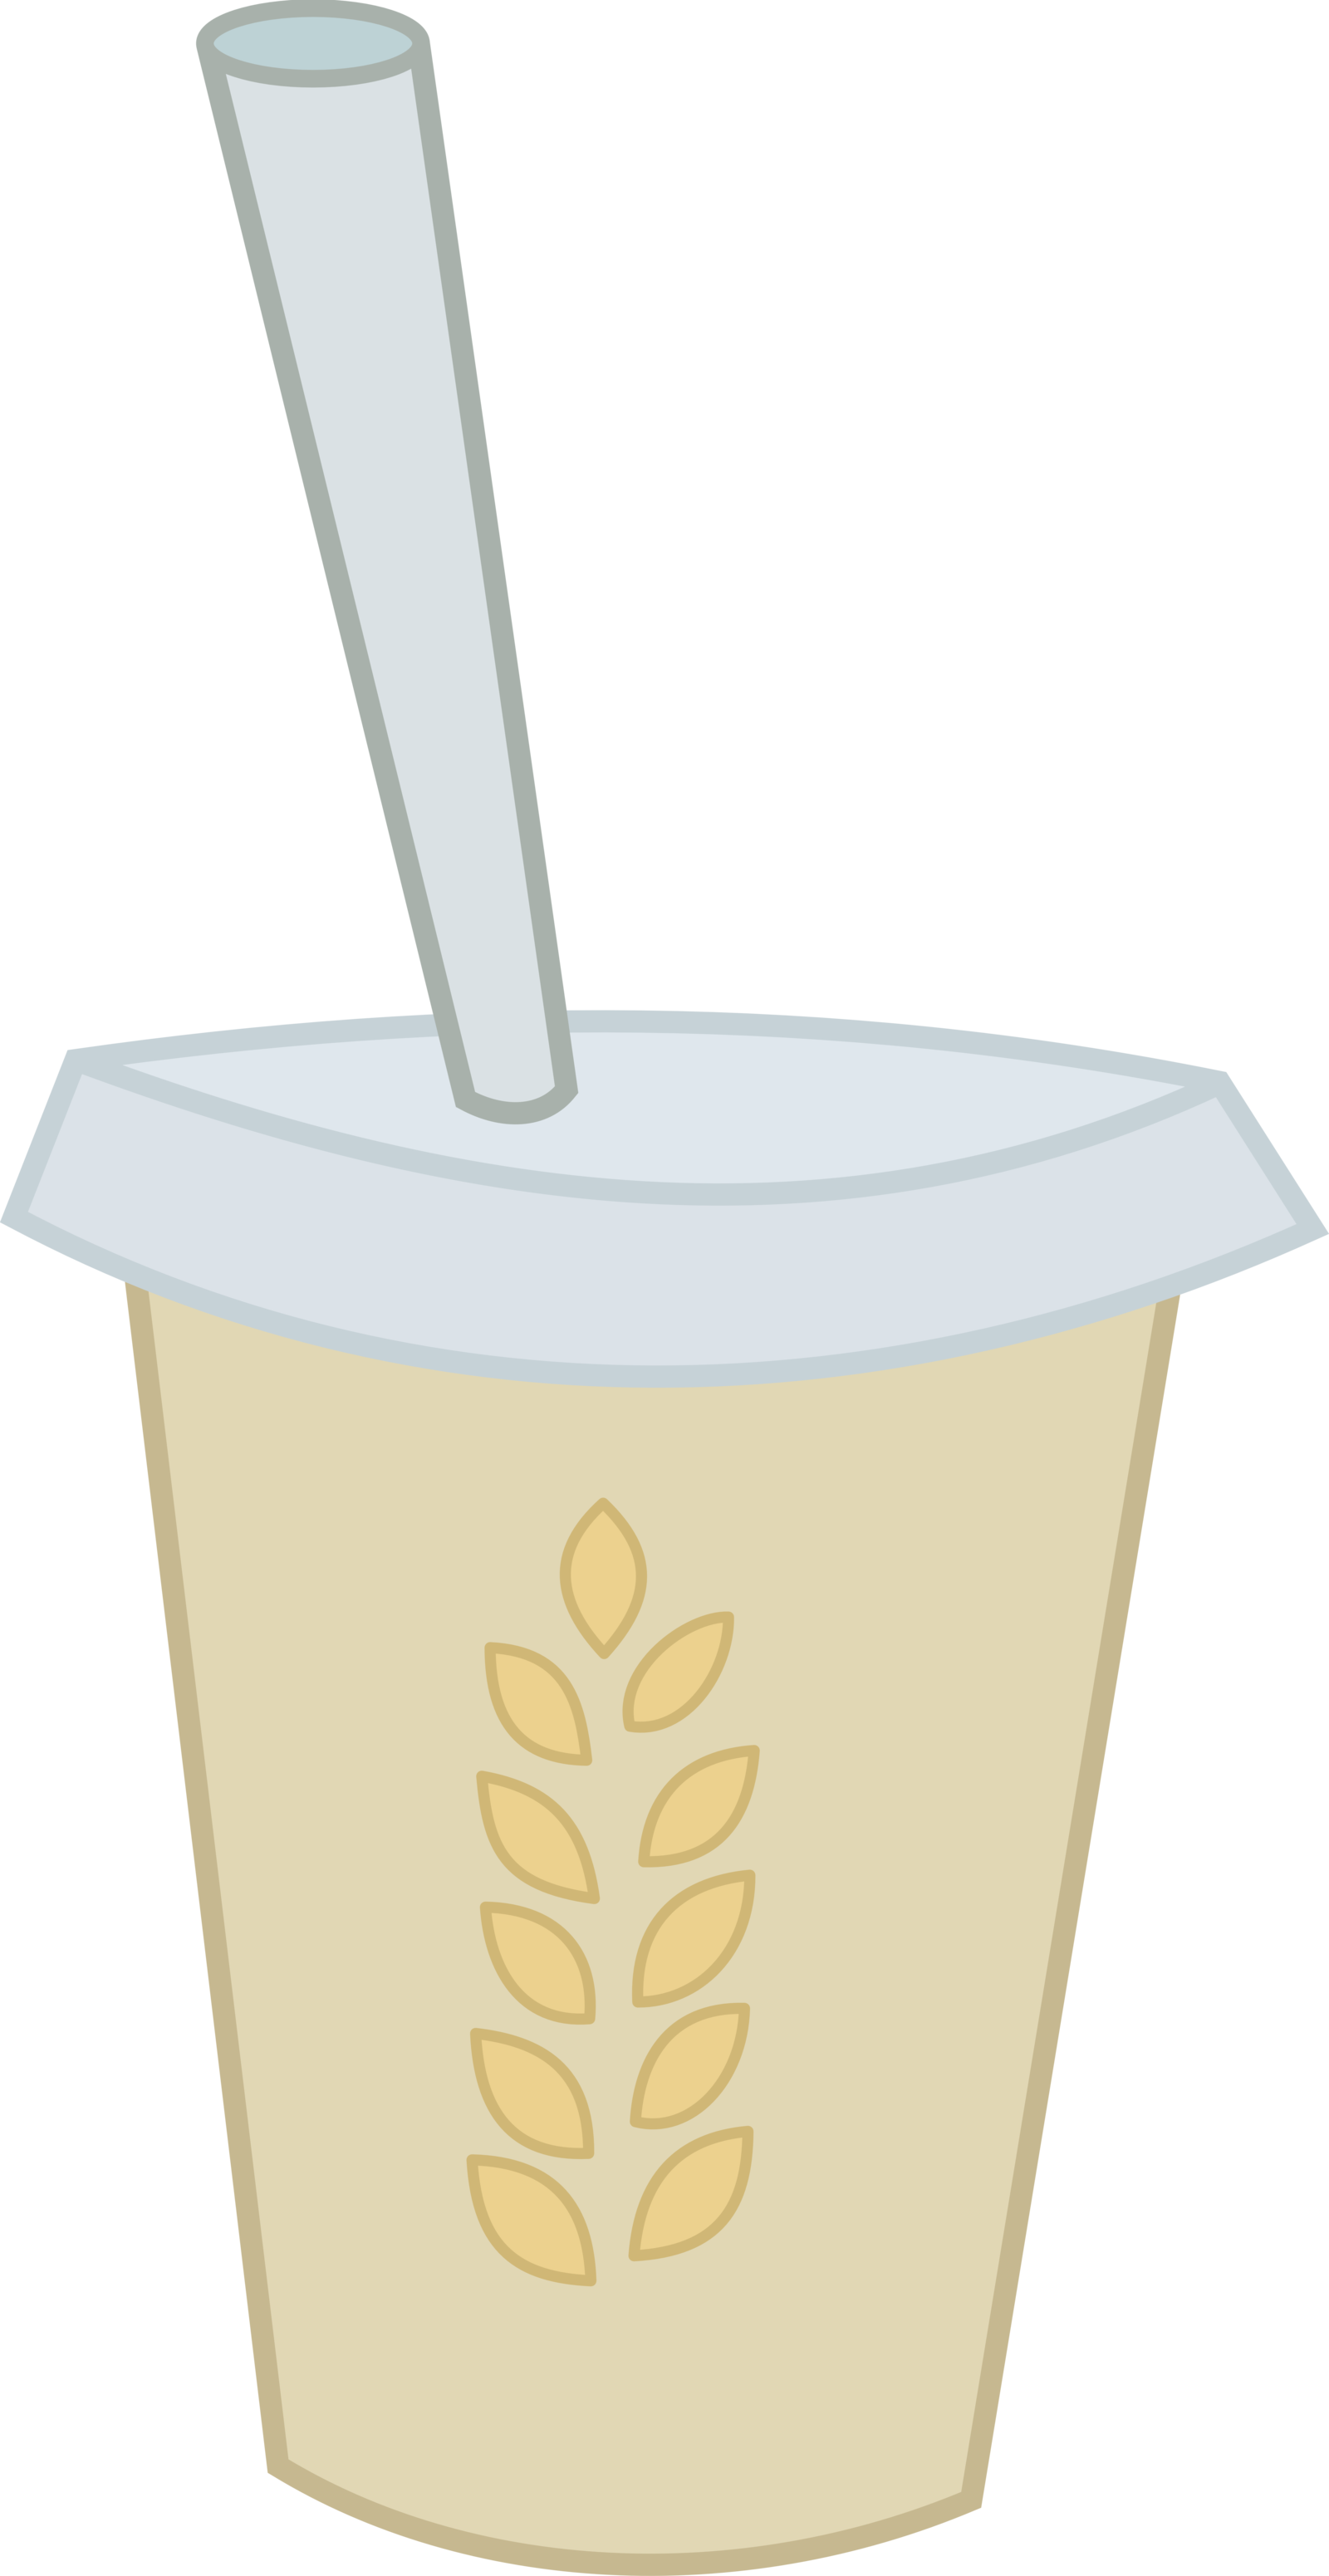 Smoothie vector. Pin by biogalia on